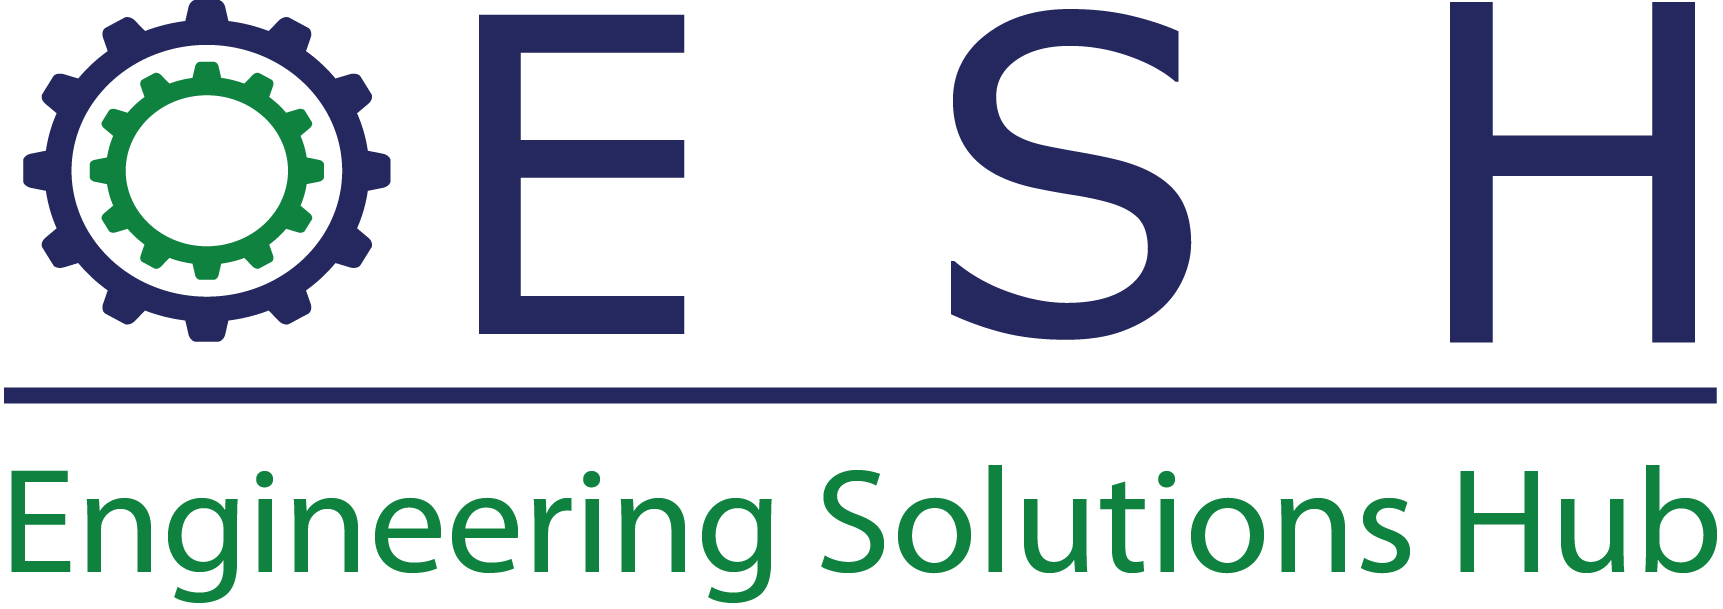 Engineering Solutions Hub